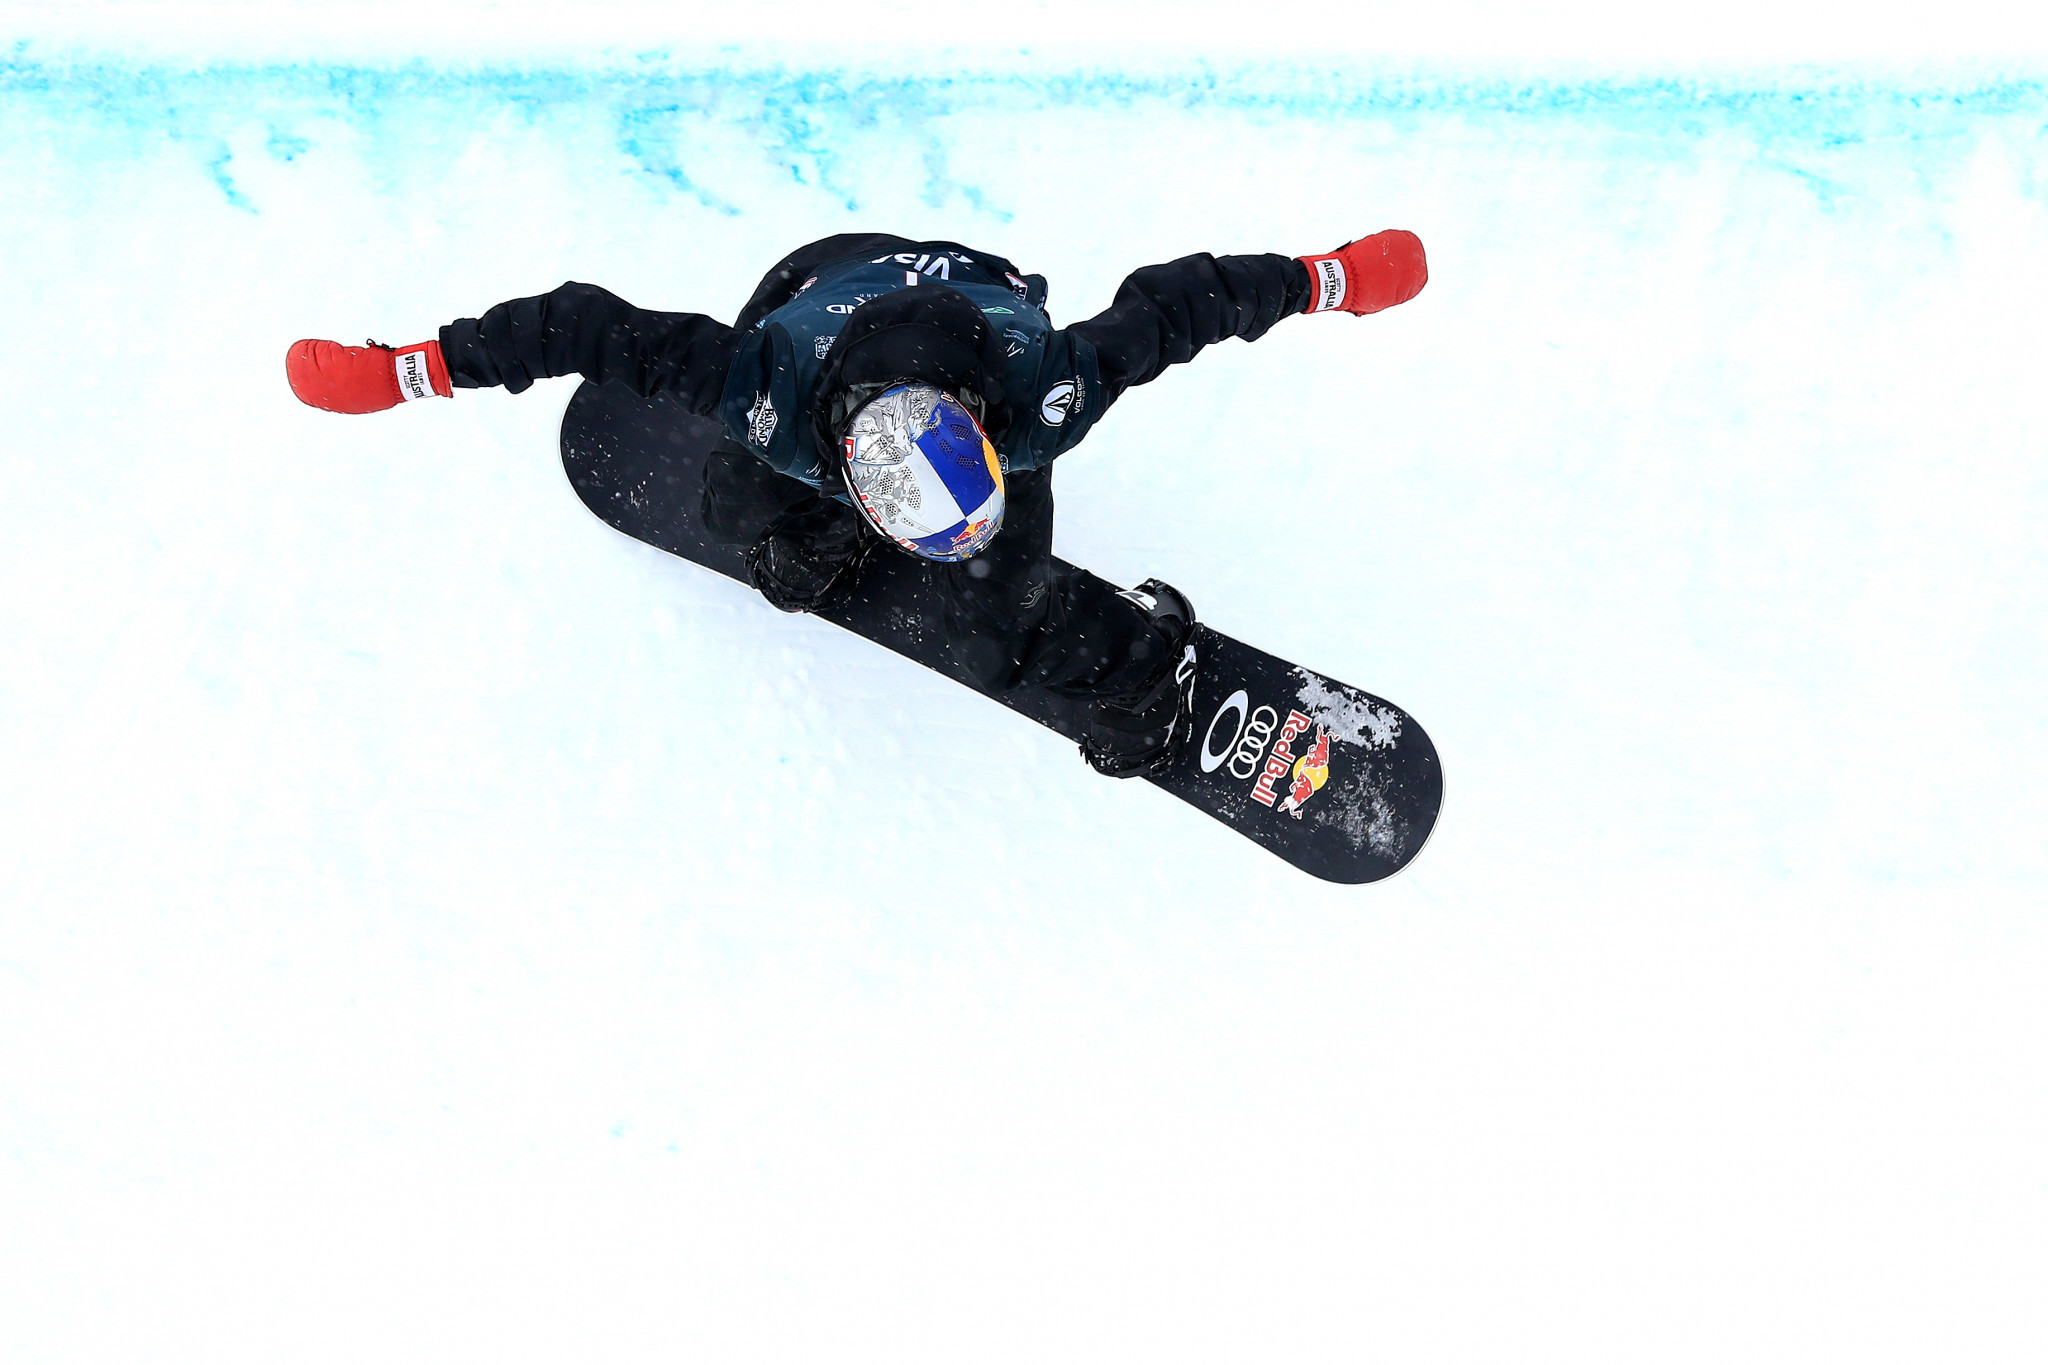 Many snowboarders and freeskiers begin their Olympic journeys with USASA ©Getty Images